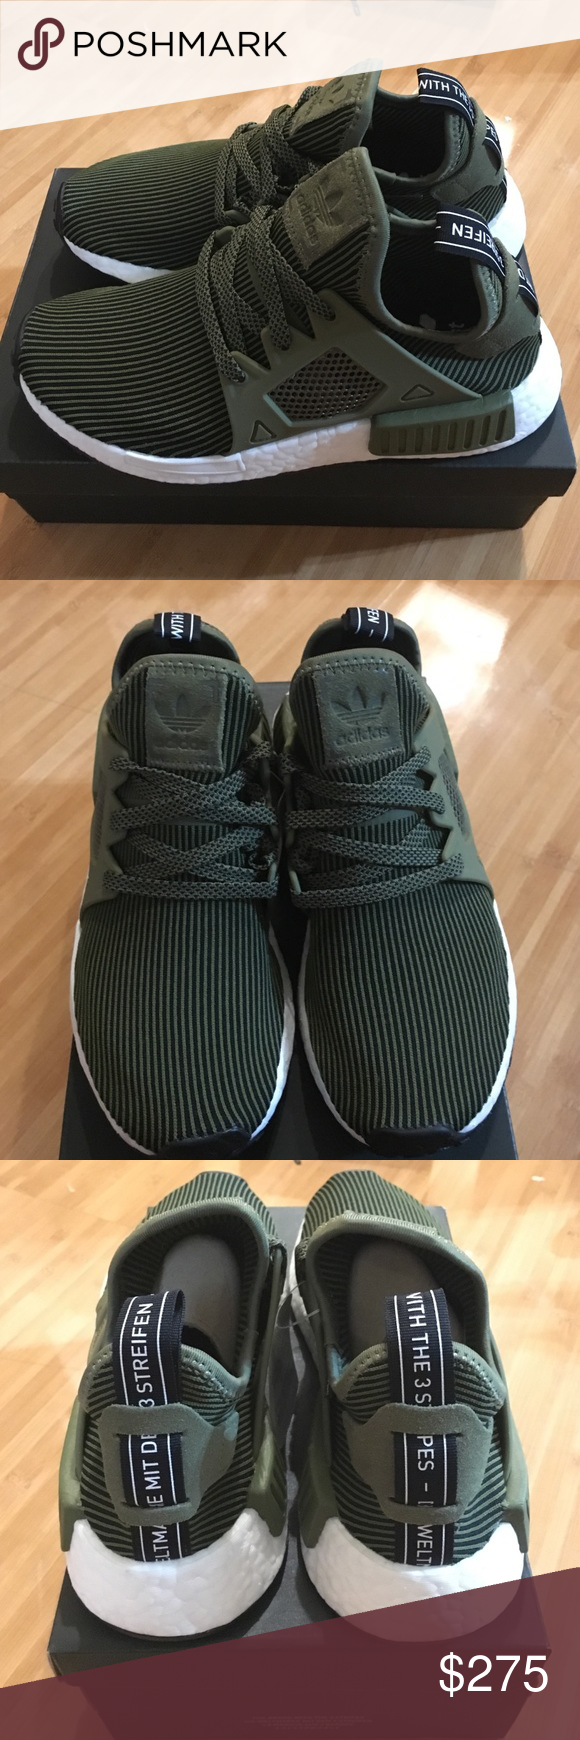 6a0983dce adidas nmd rx1 boost olive Deadstock! This color is super rare! Get it  while it last! Men size 5 and 6 so its a womens 6.5-7.5Price is FIRM!